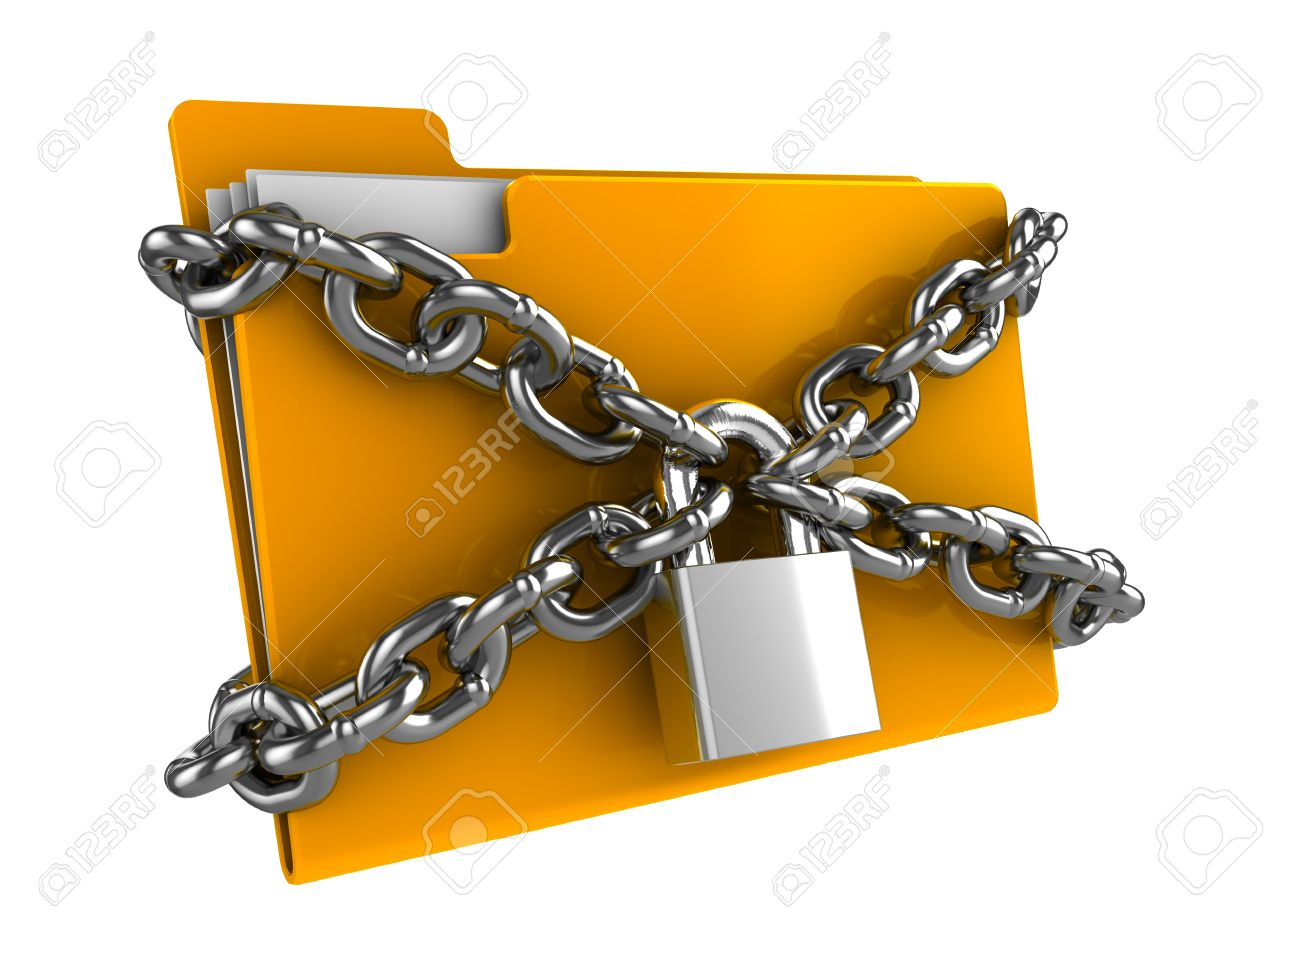 3d illustration of documetns folder locked by chains Stock Photo - 9972187